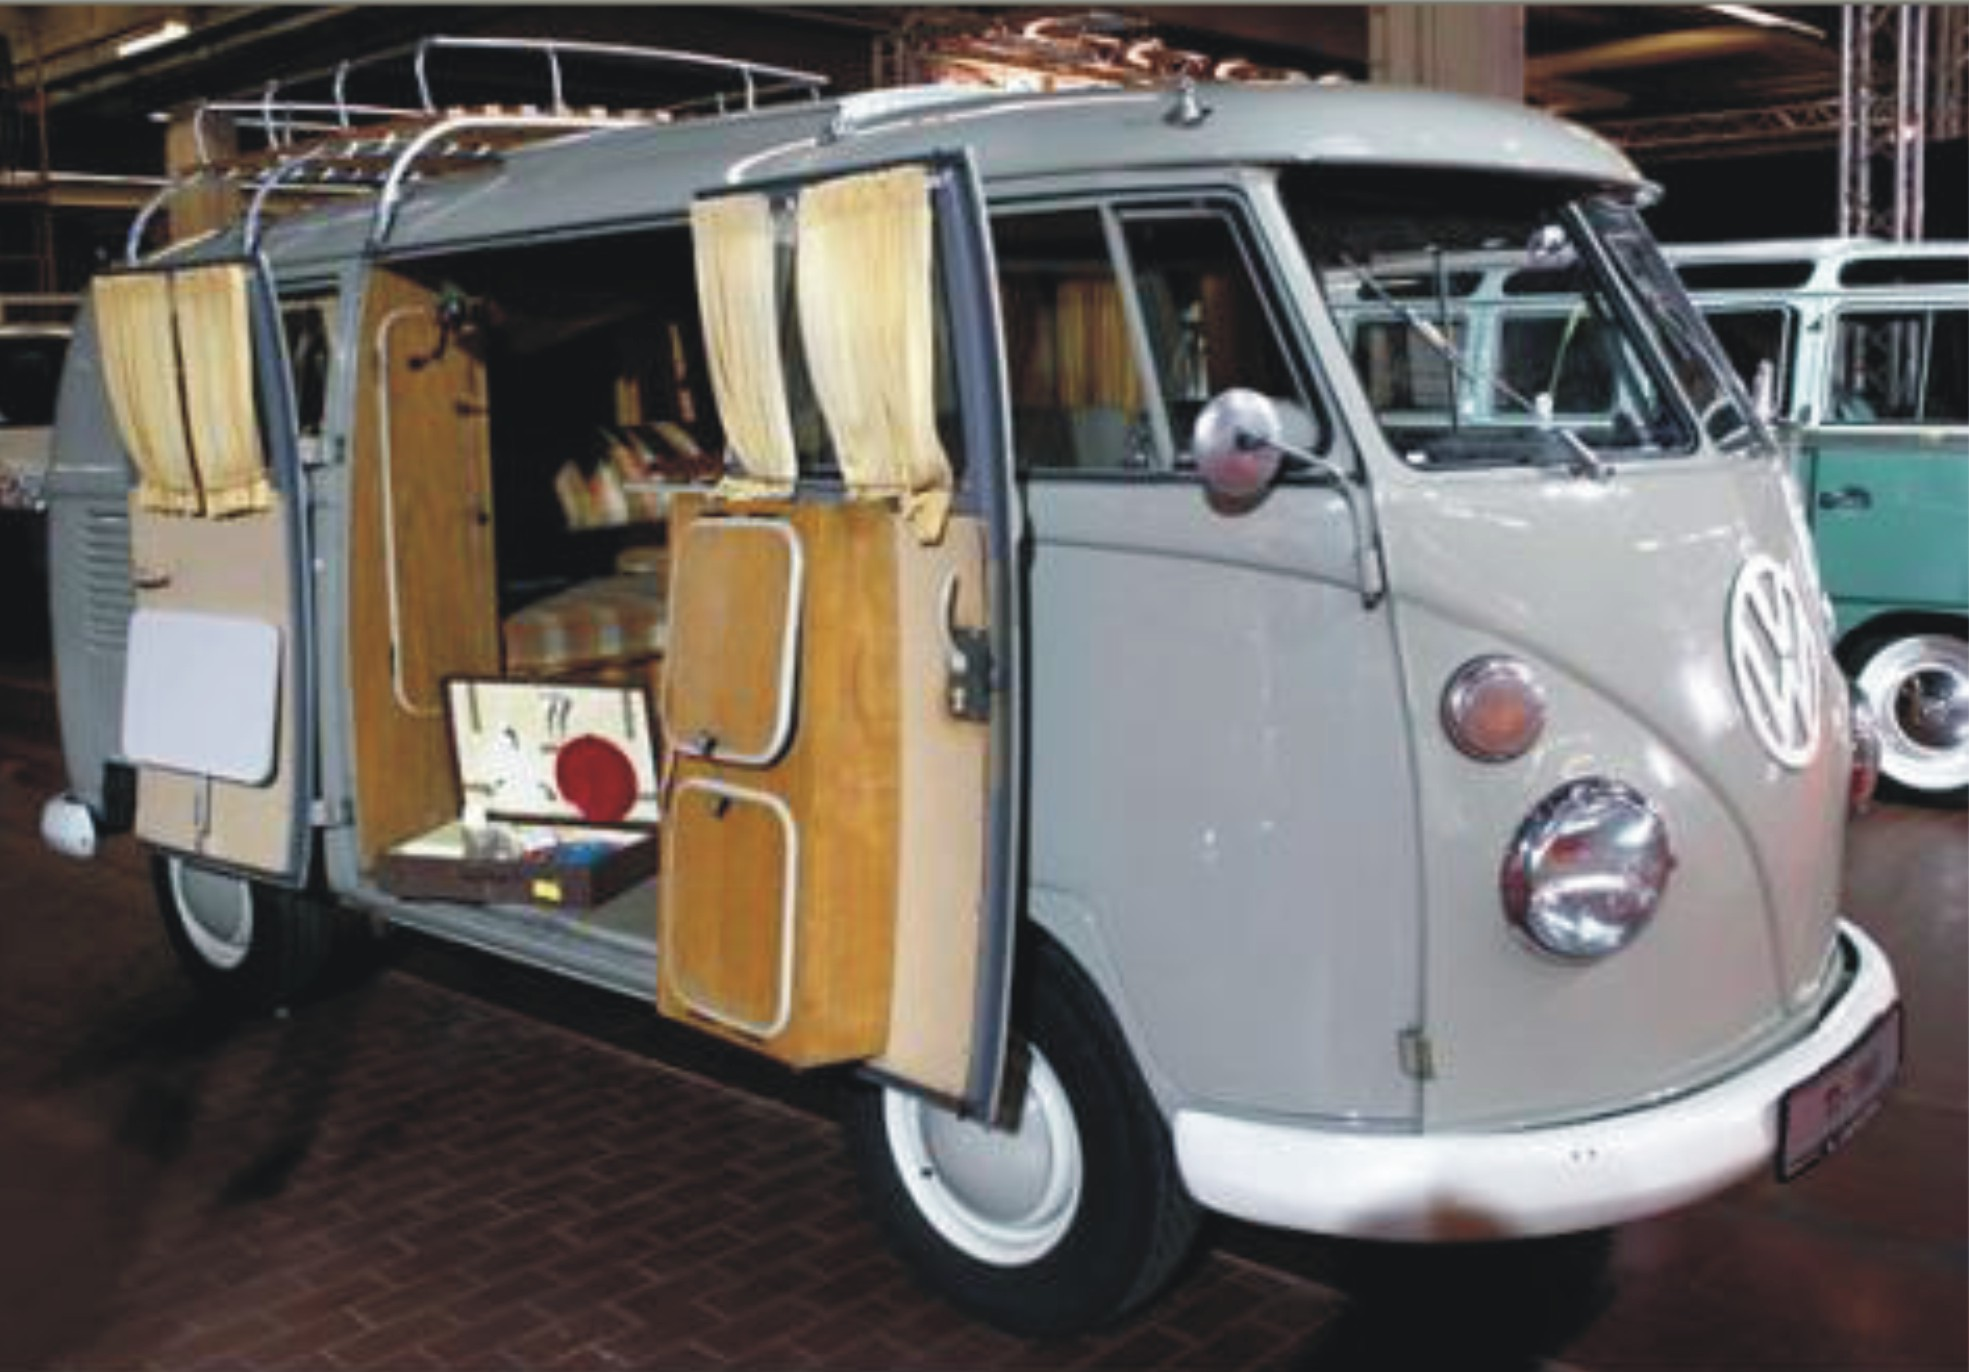 busvw i of mom had bus was volkswagen camper my one dad when pin a it these